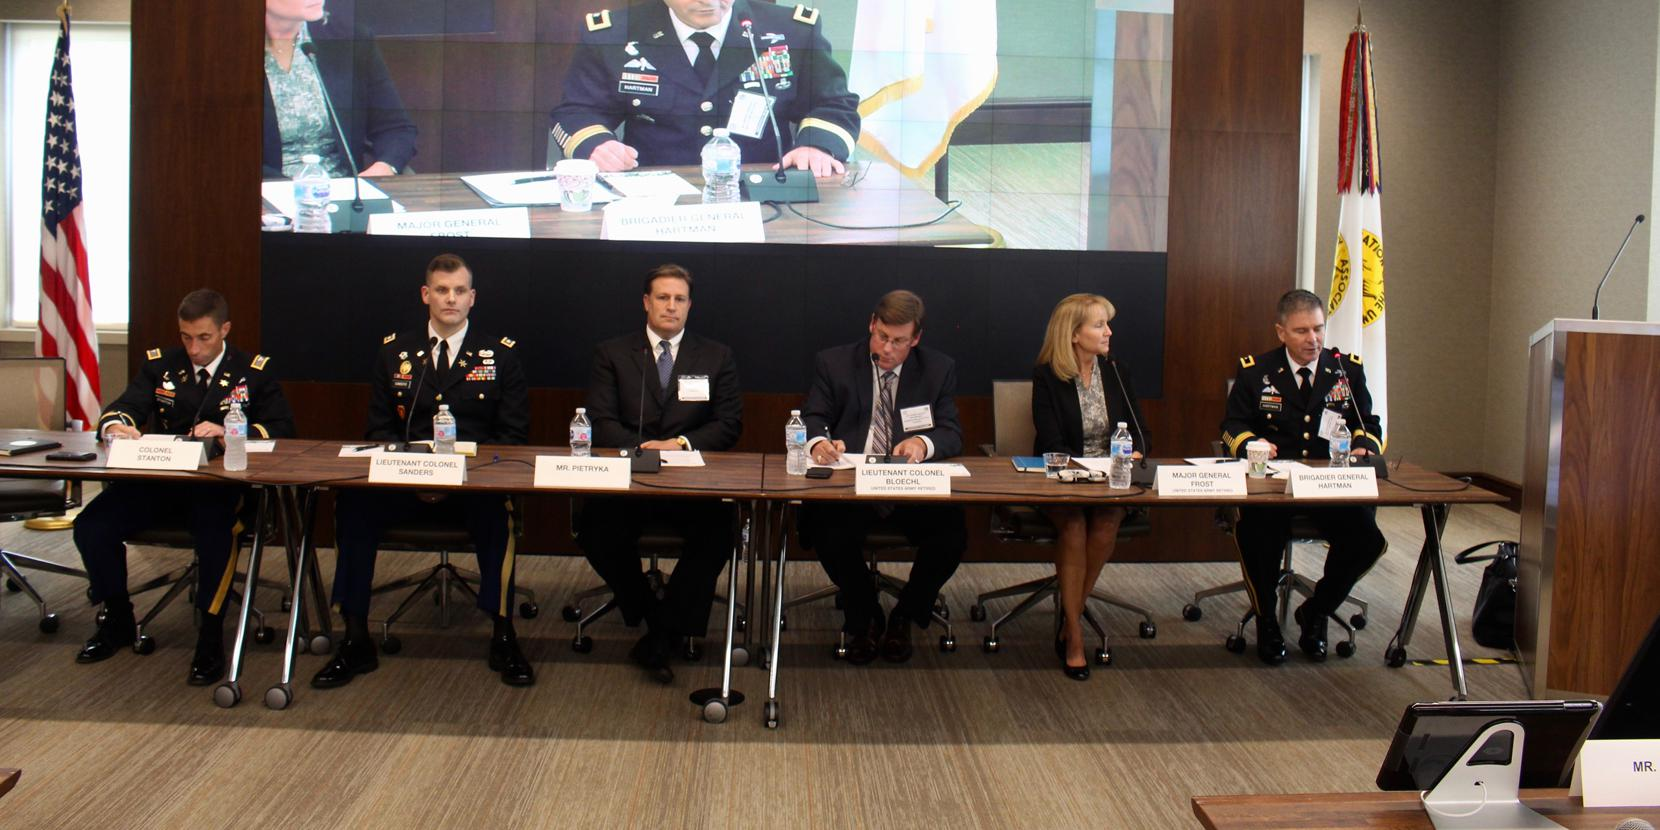 After 10 rotations with brigades, the Army's Cyber-Electromagnetic Activities (CEMA) teams are hitting their stride, Army experts explain at an Association of the U.S. Army event August 2. Photo credit: Anna Neubauer